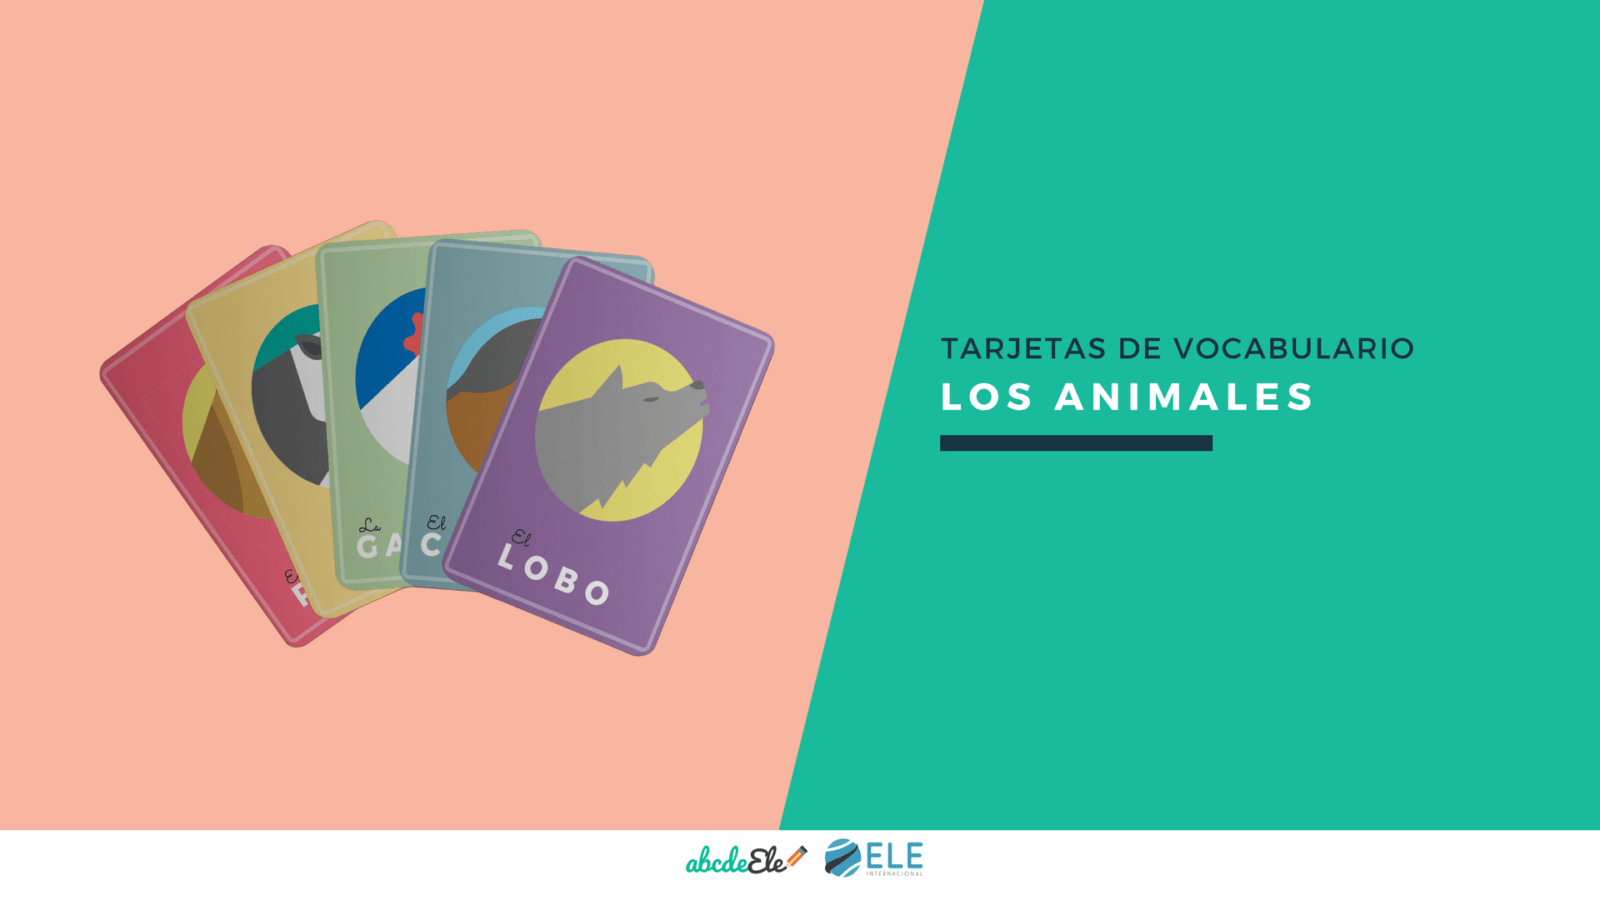 Tarjetas de vocabulario de animales para clases de ELE. #activity #spanishteacher